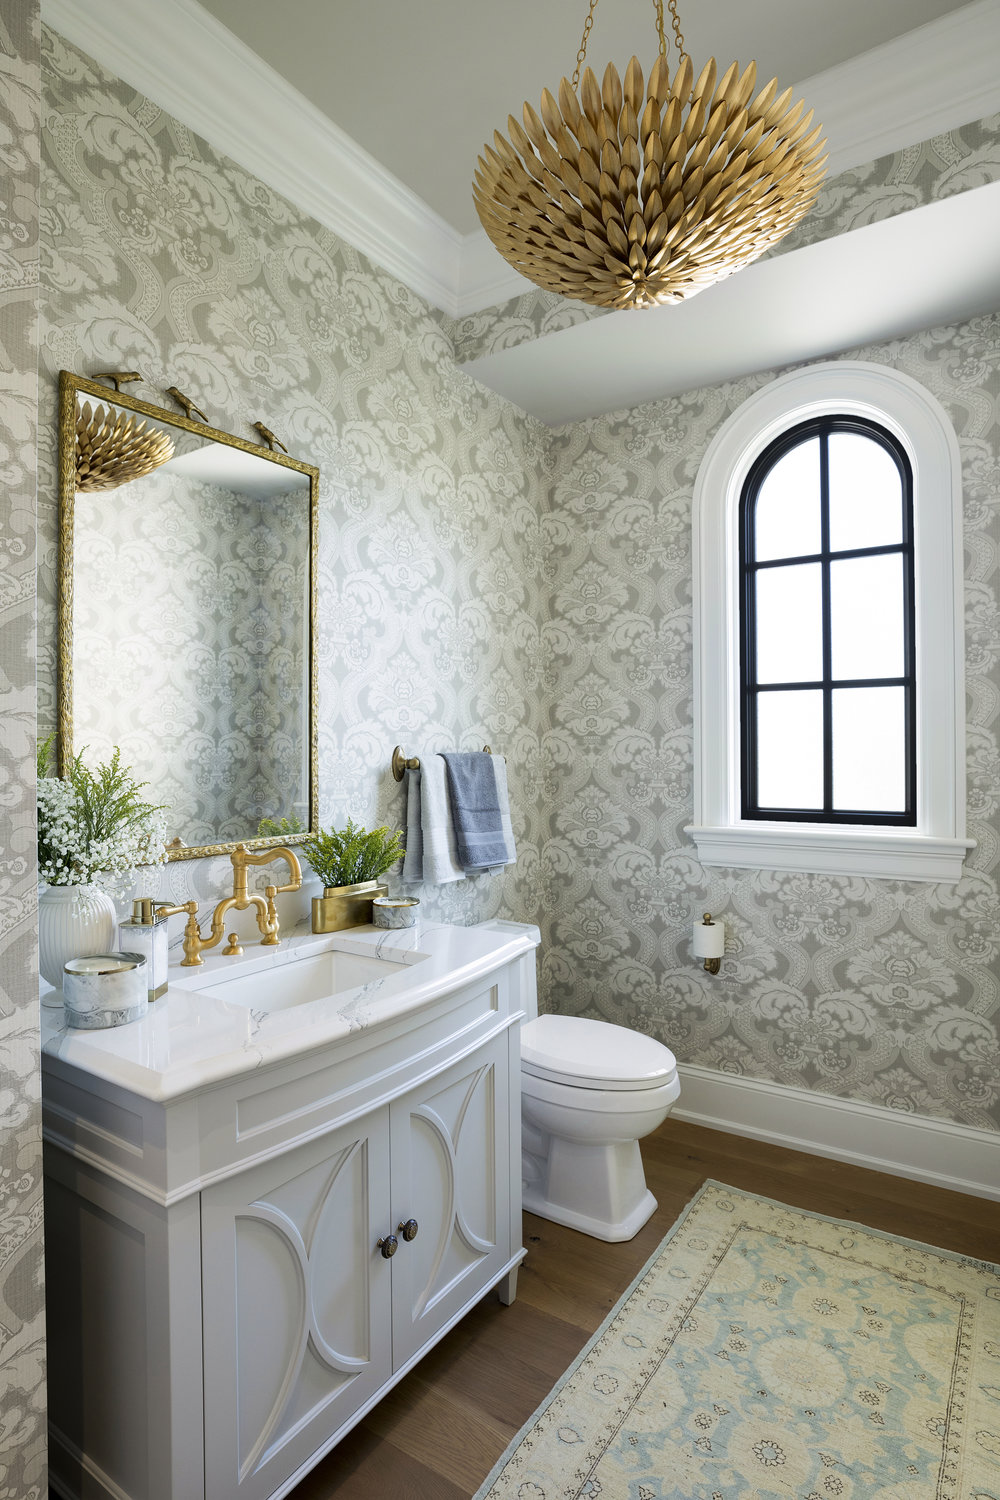 Lake Minnetonka, ASID ShOWCASE HOUSe, 2017  We had the opportunity to join twenty-four other Interior Designers on this year's Showcase House. After a year in the making, Design by Lisa was able to unveil the Entry, Powder Room, Staircase and Upstairs Hallway. We love how fresh this Chateau Powder Bath turned out!